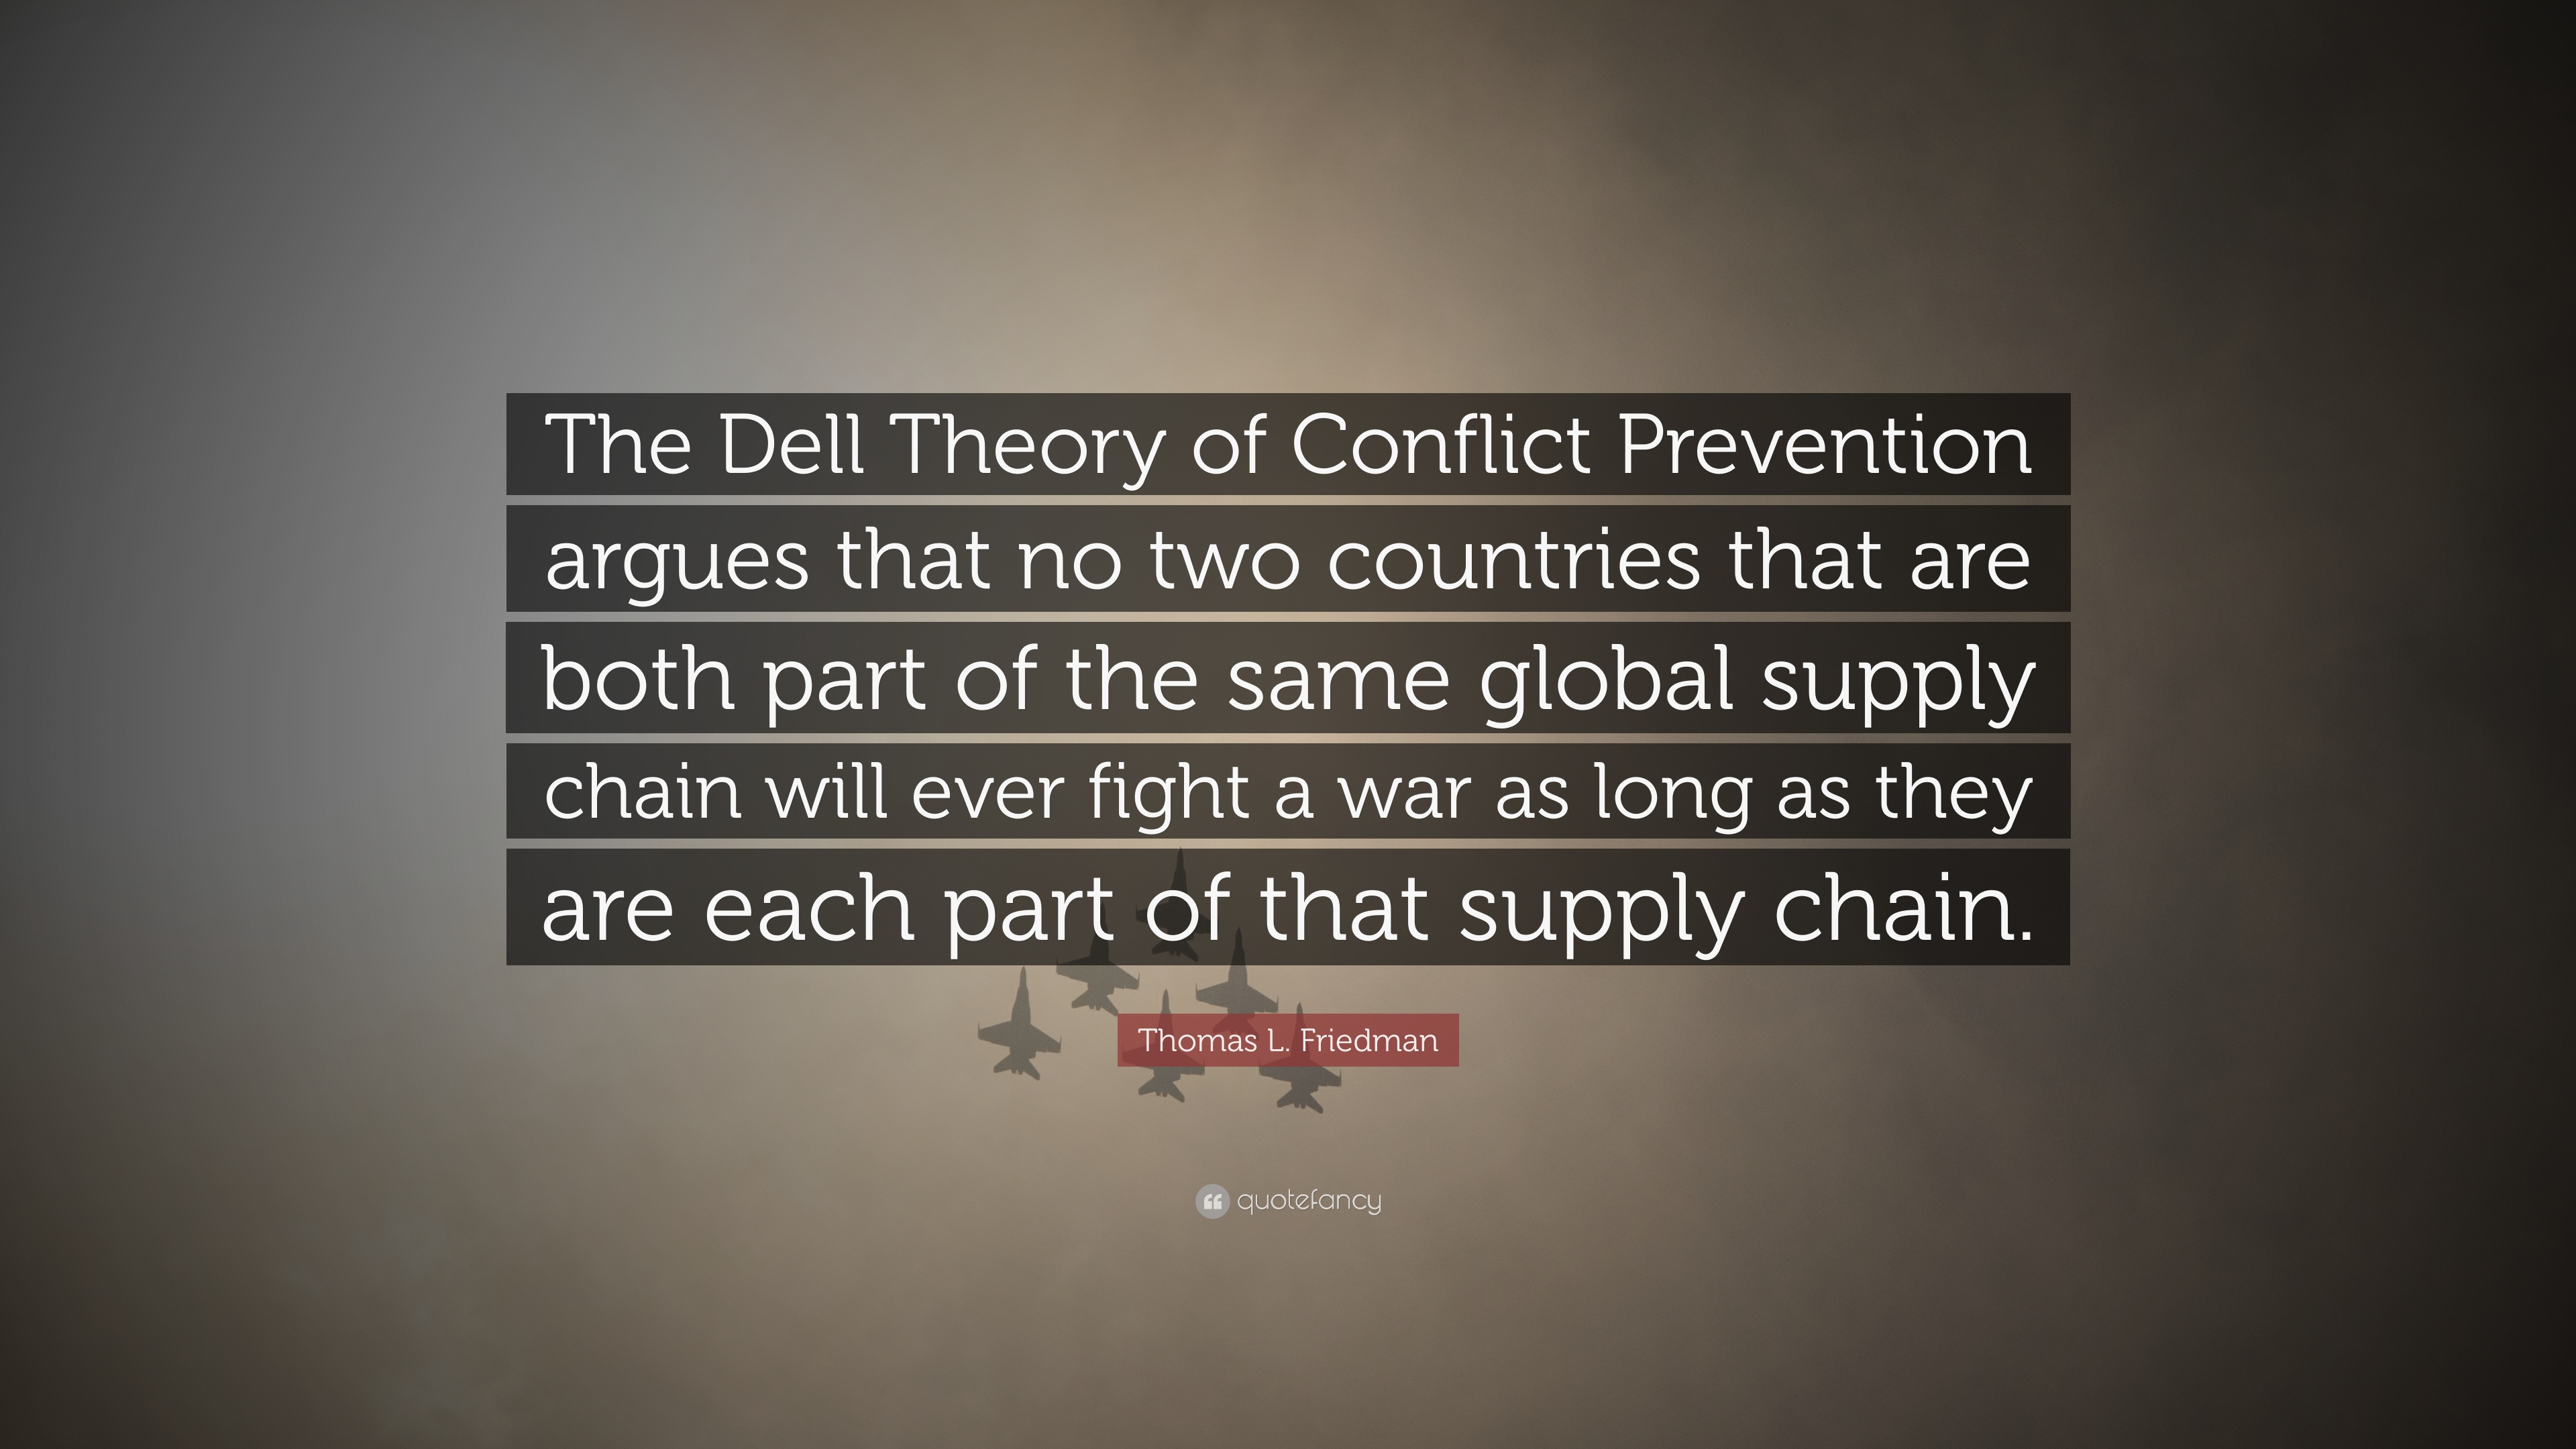 the dell theory of conflict prevention The dell theory of conflict prevention grew from the golden arches theory of conflict prevention freidman found that no two countries with a mcdonalds had ever fought a war with each other, which proves that once countries become more economically developed wars are less rampant.